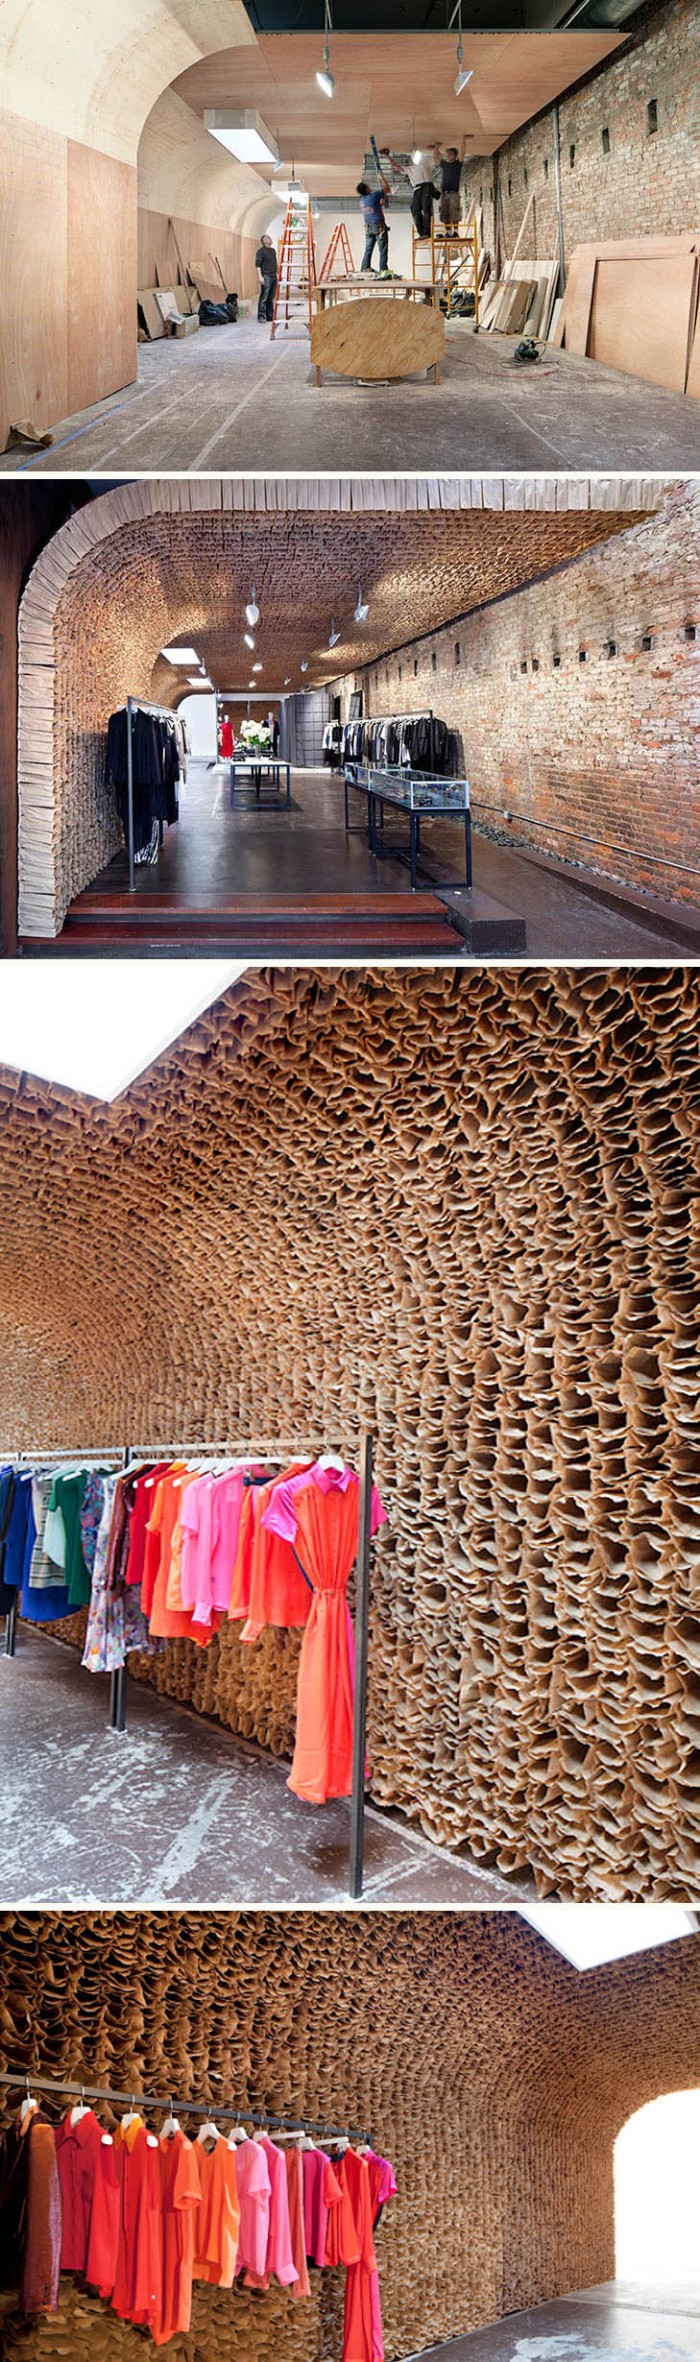 New cool highend store in meatpacking with 25000 paperbag installation, Owen, Tacklebox, cool store design